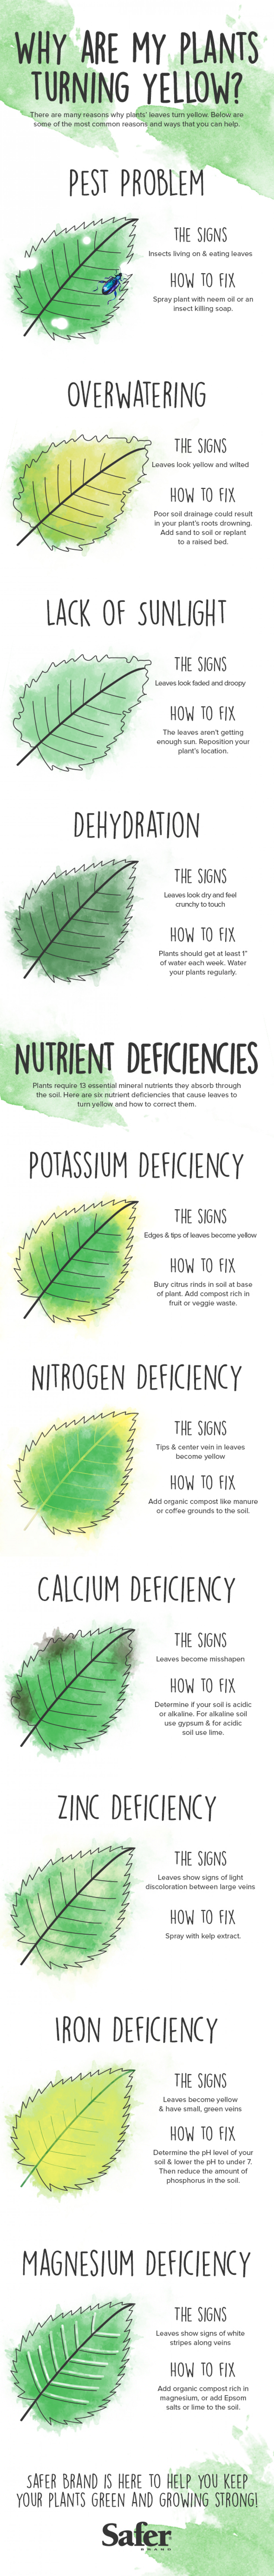 Why Are My Plants Turning Yellow? Infographic